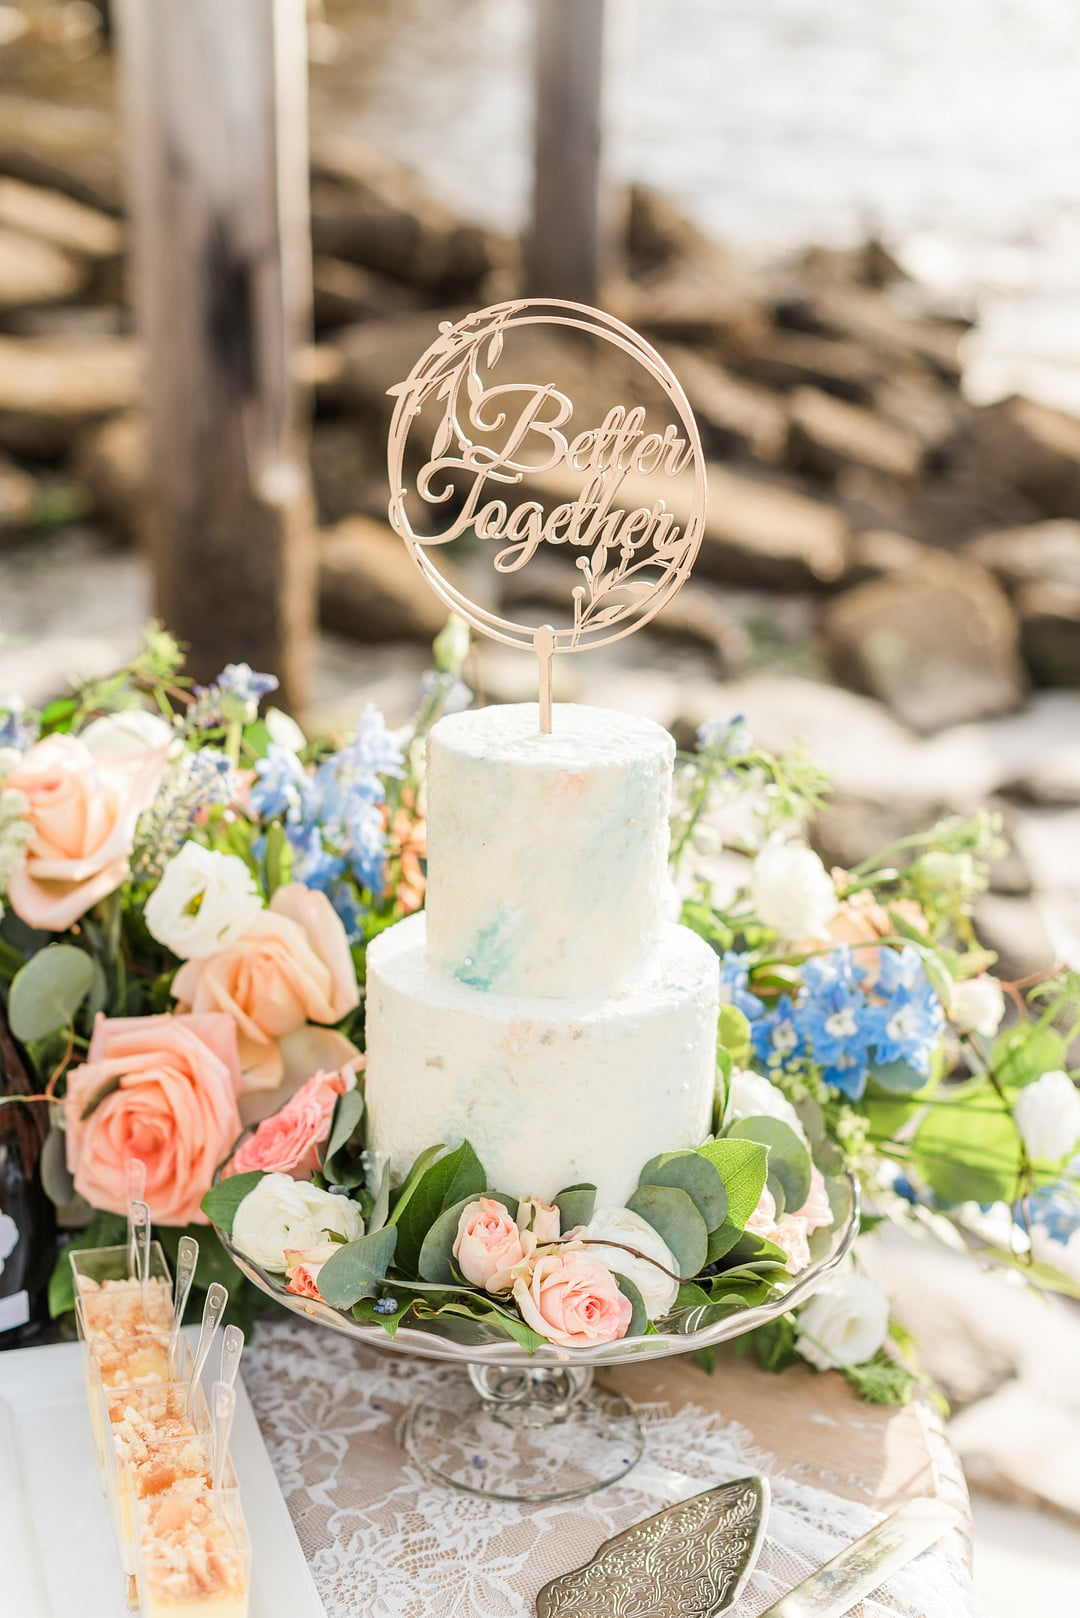 two tier blue and white cakes with florals and greenery surrounding